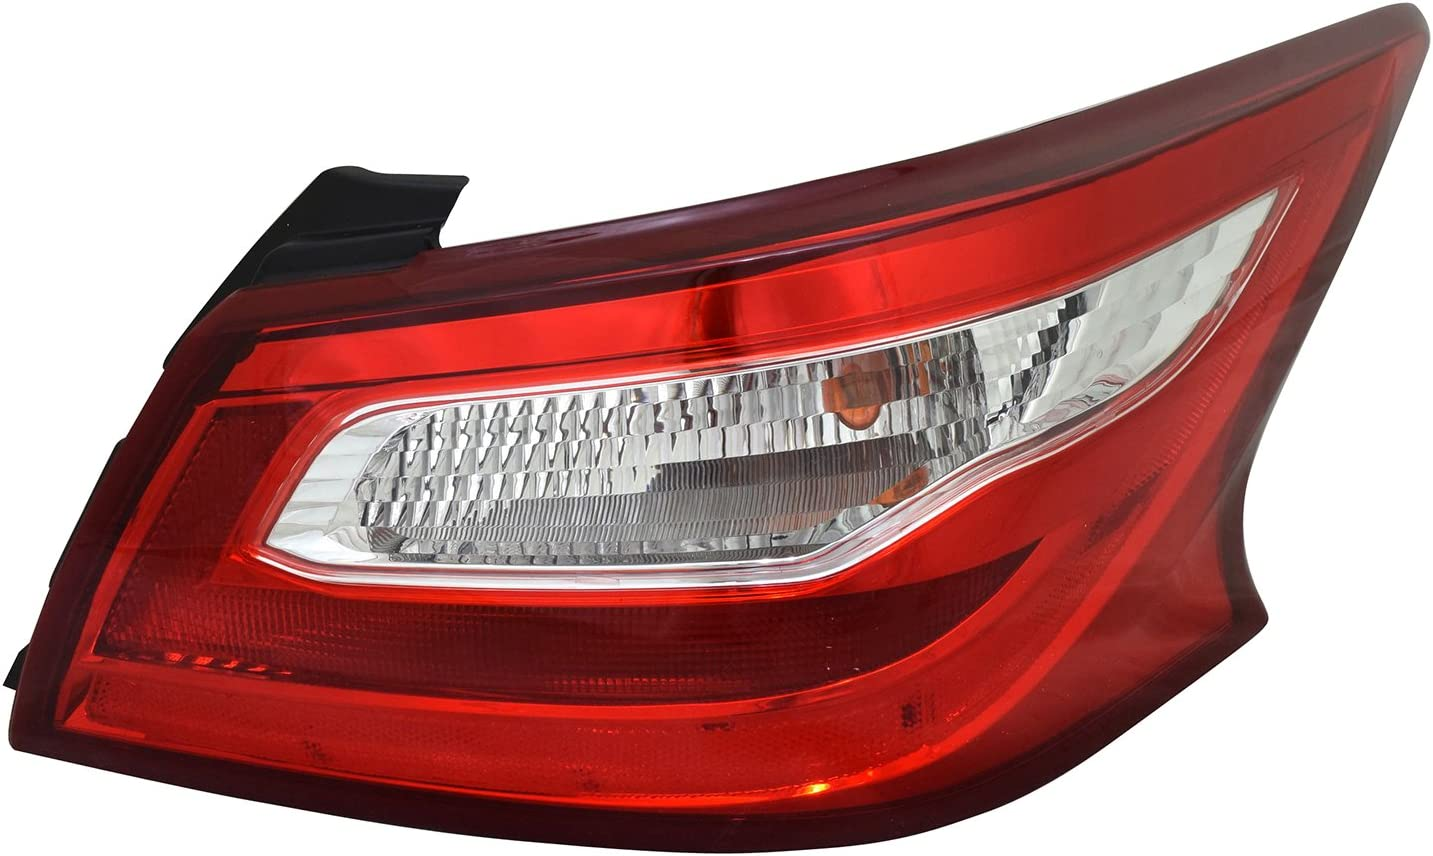 TYC 11-6887-00-1 Compatible with NISSAN gift Tail Altima Ranking TOP4 Replacement